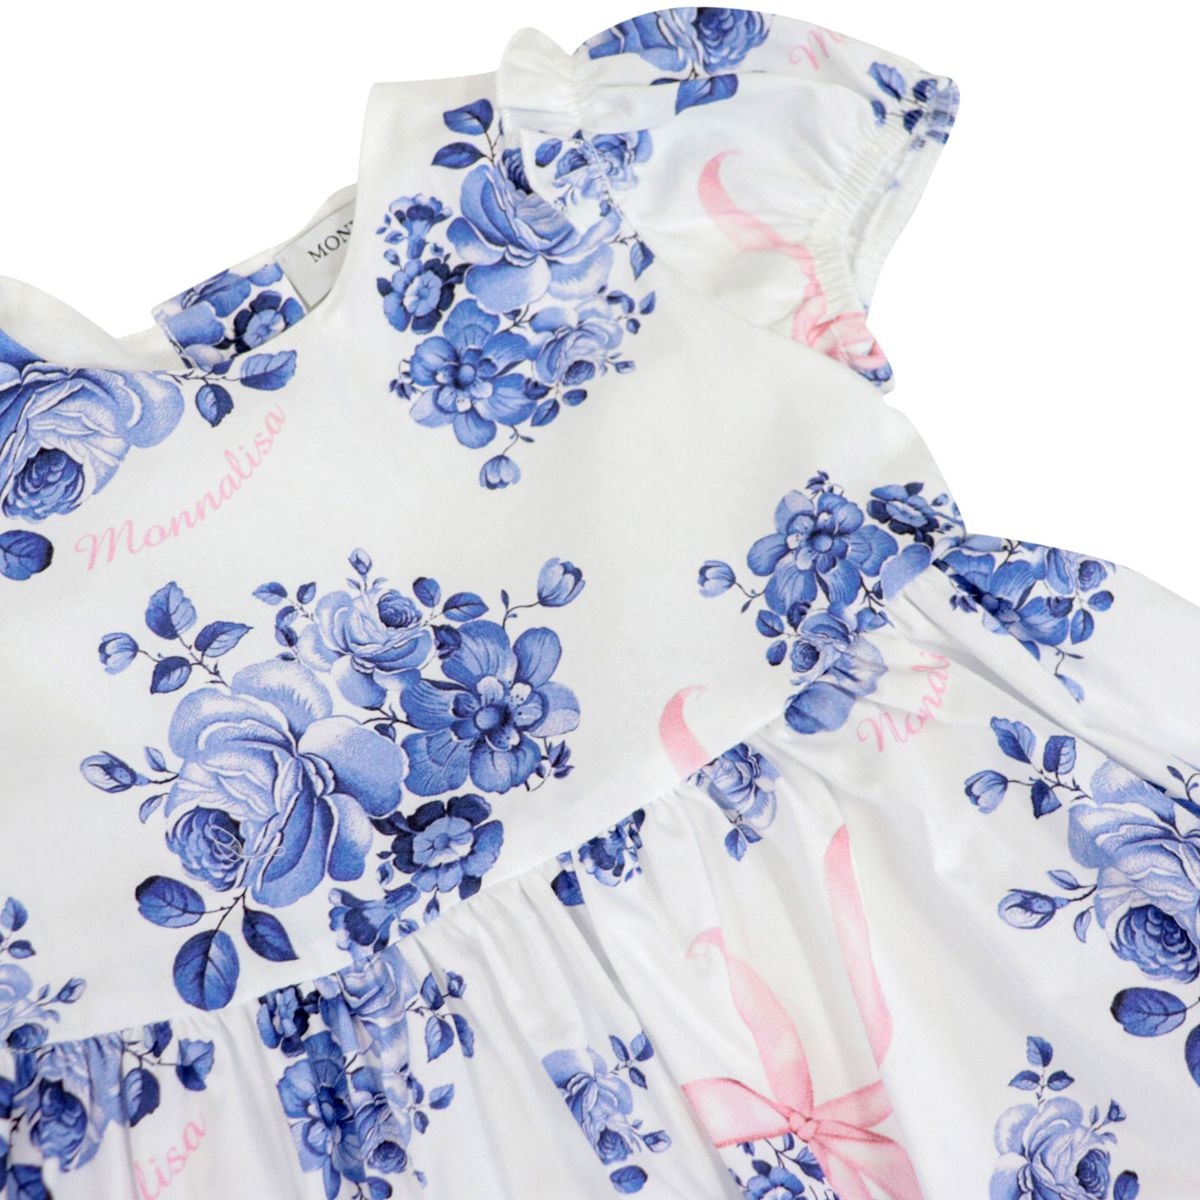 Cotton dress with wide skirt and rose print balloon sleeves White / blue Monnalisa